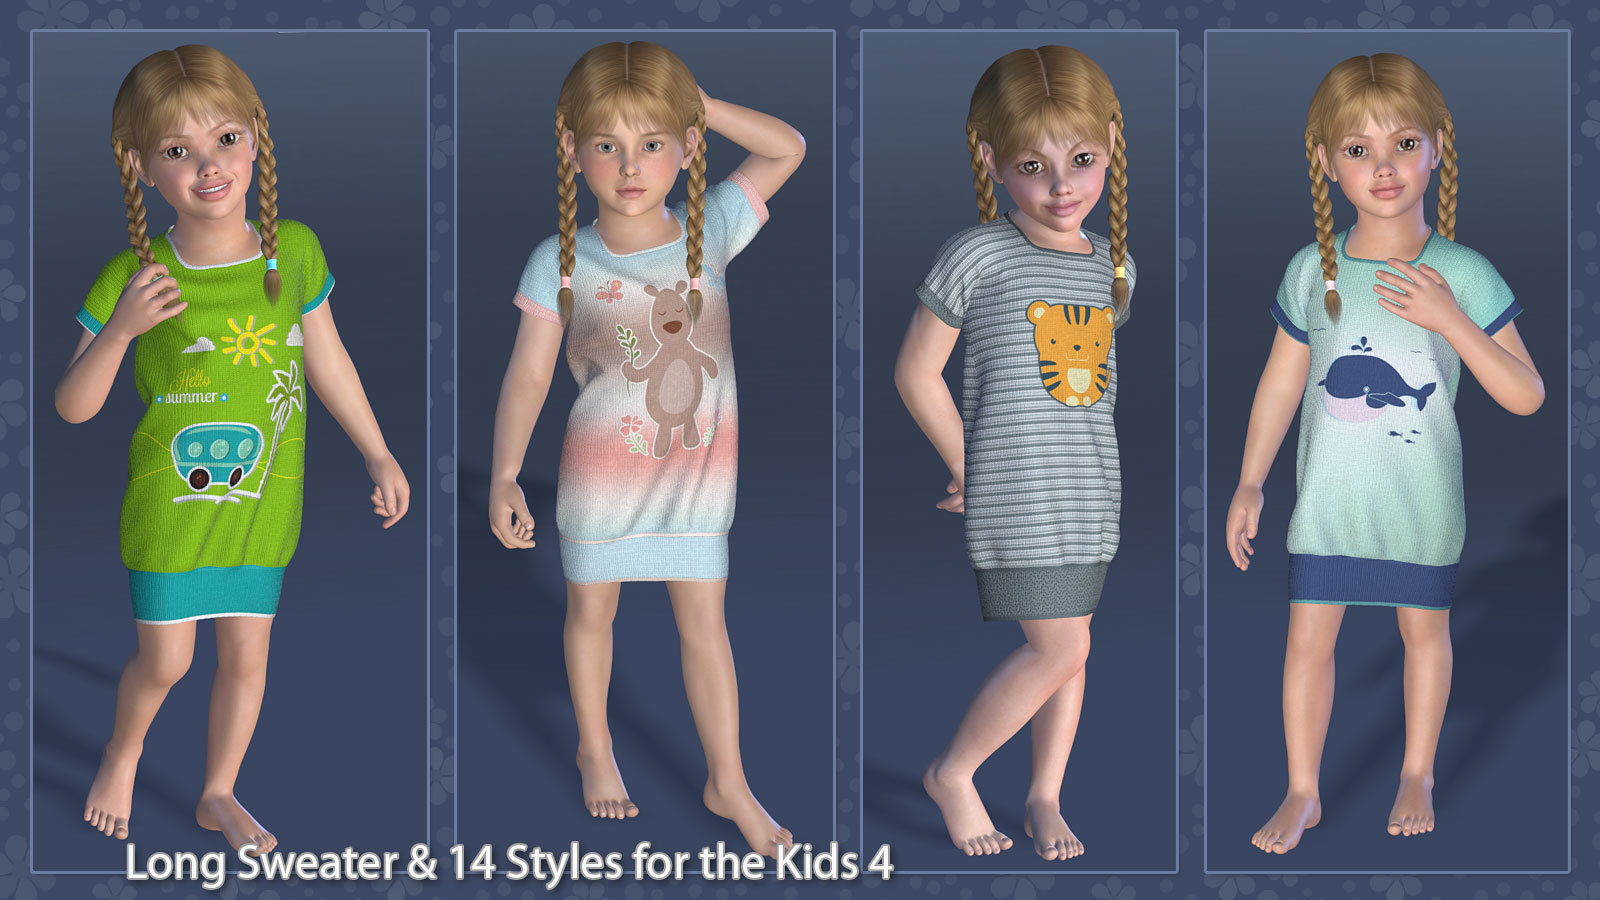 Long Sweater and 14 Styles for the Kids 4